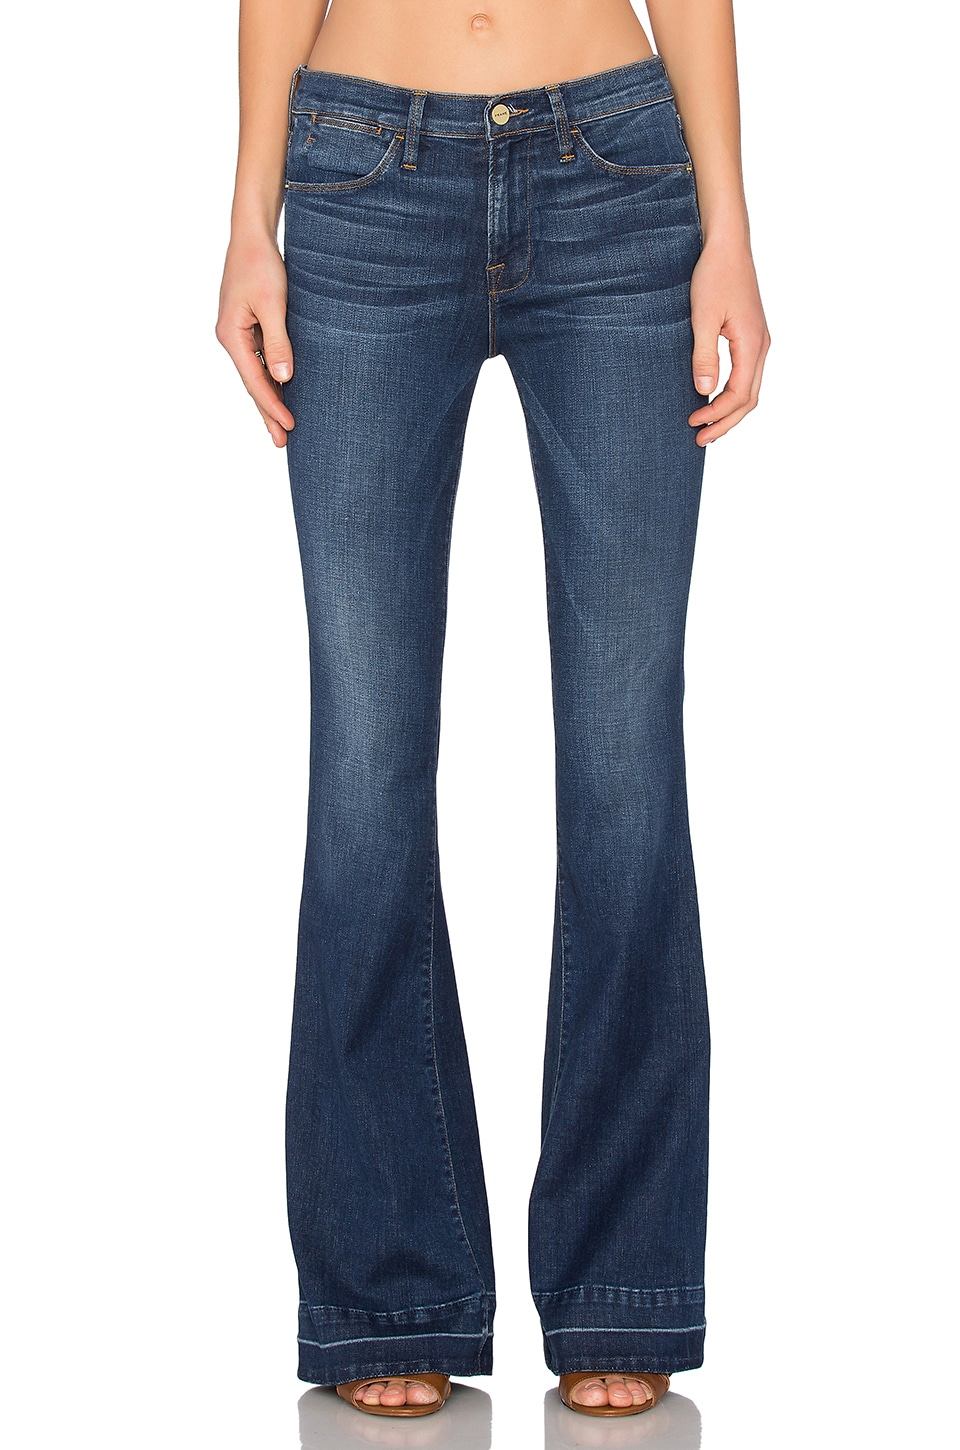 FRAME Denim Le High Flare in Colby